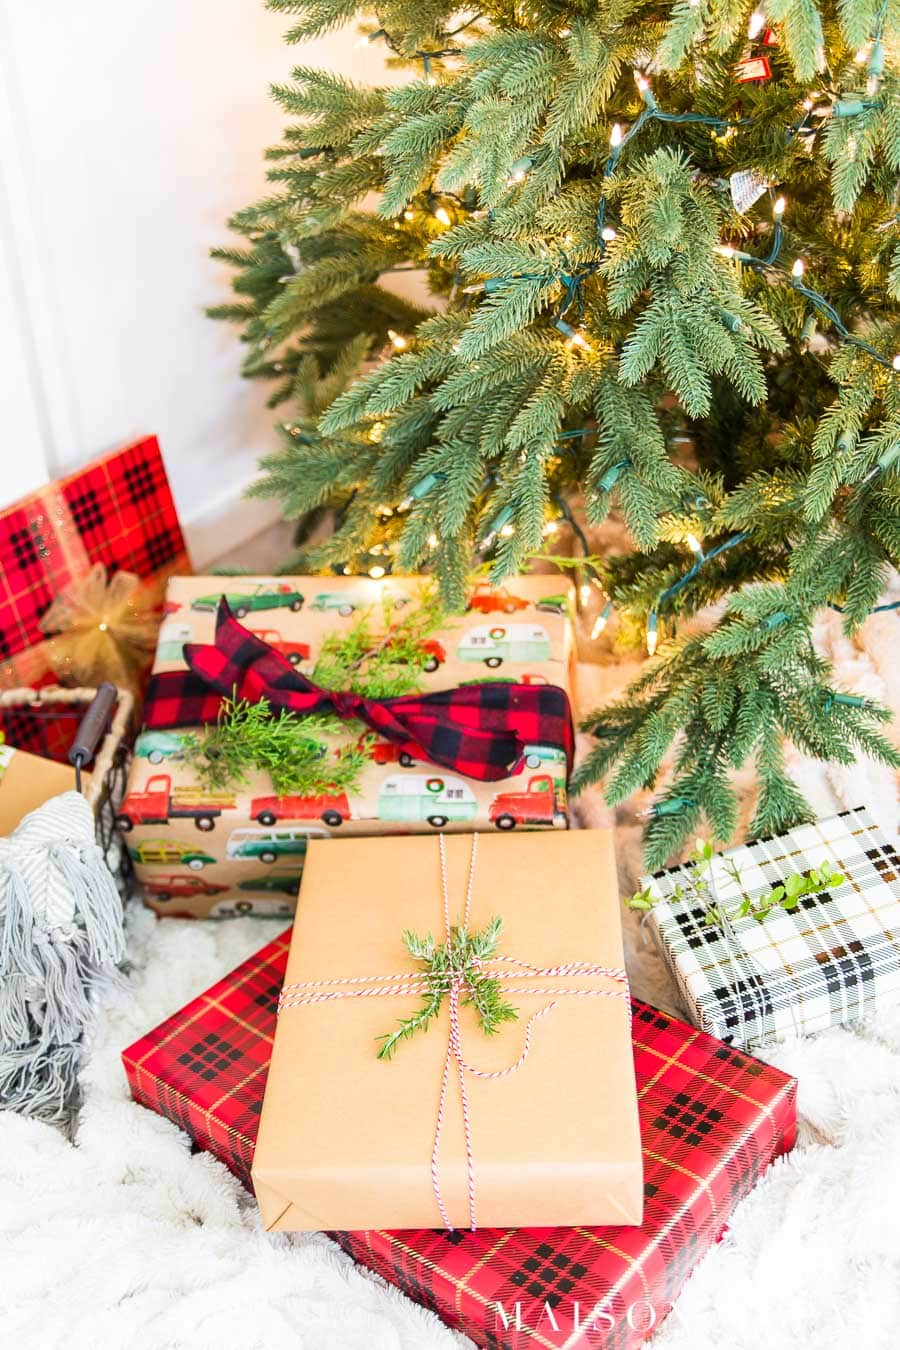 coordinated wrapping papers with red plaid, Kraft paper, and holiday patterns | Maison de Pax